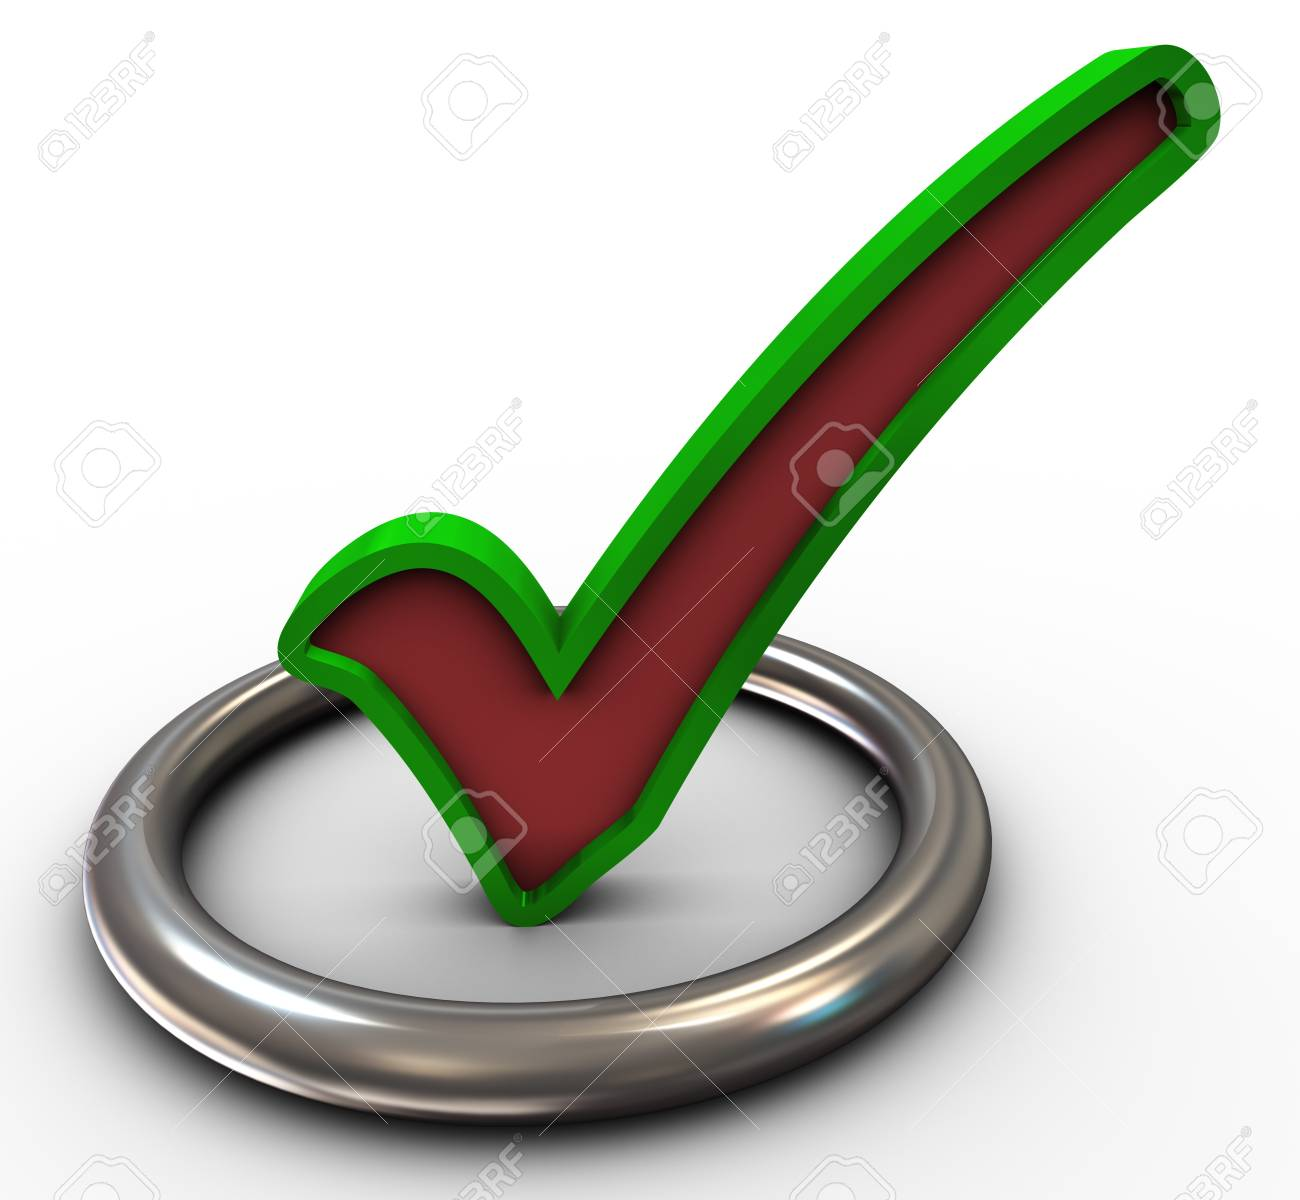 3d Render Of Check Mark Symbol In Circle Stock Photo Picture And